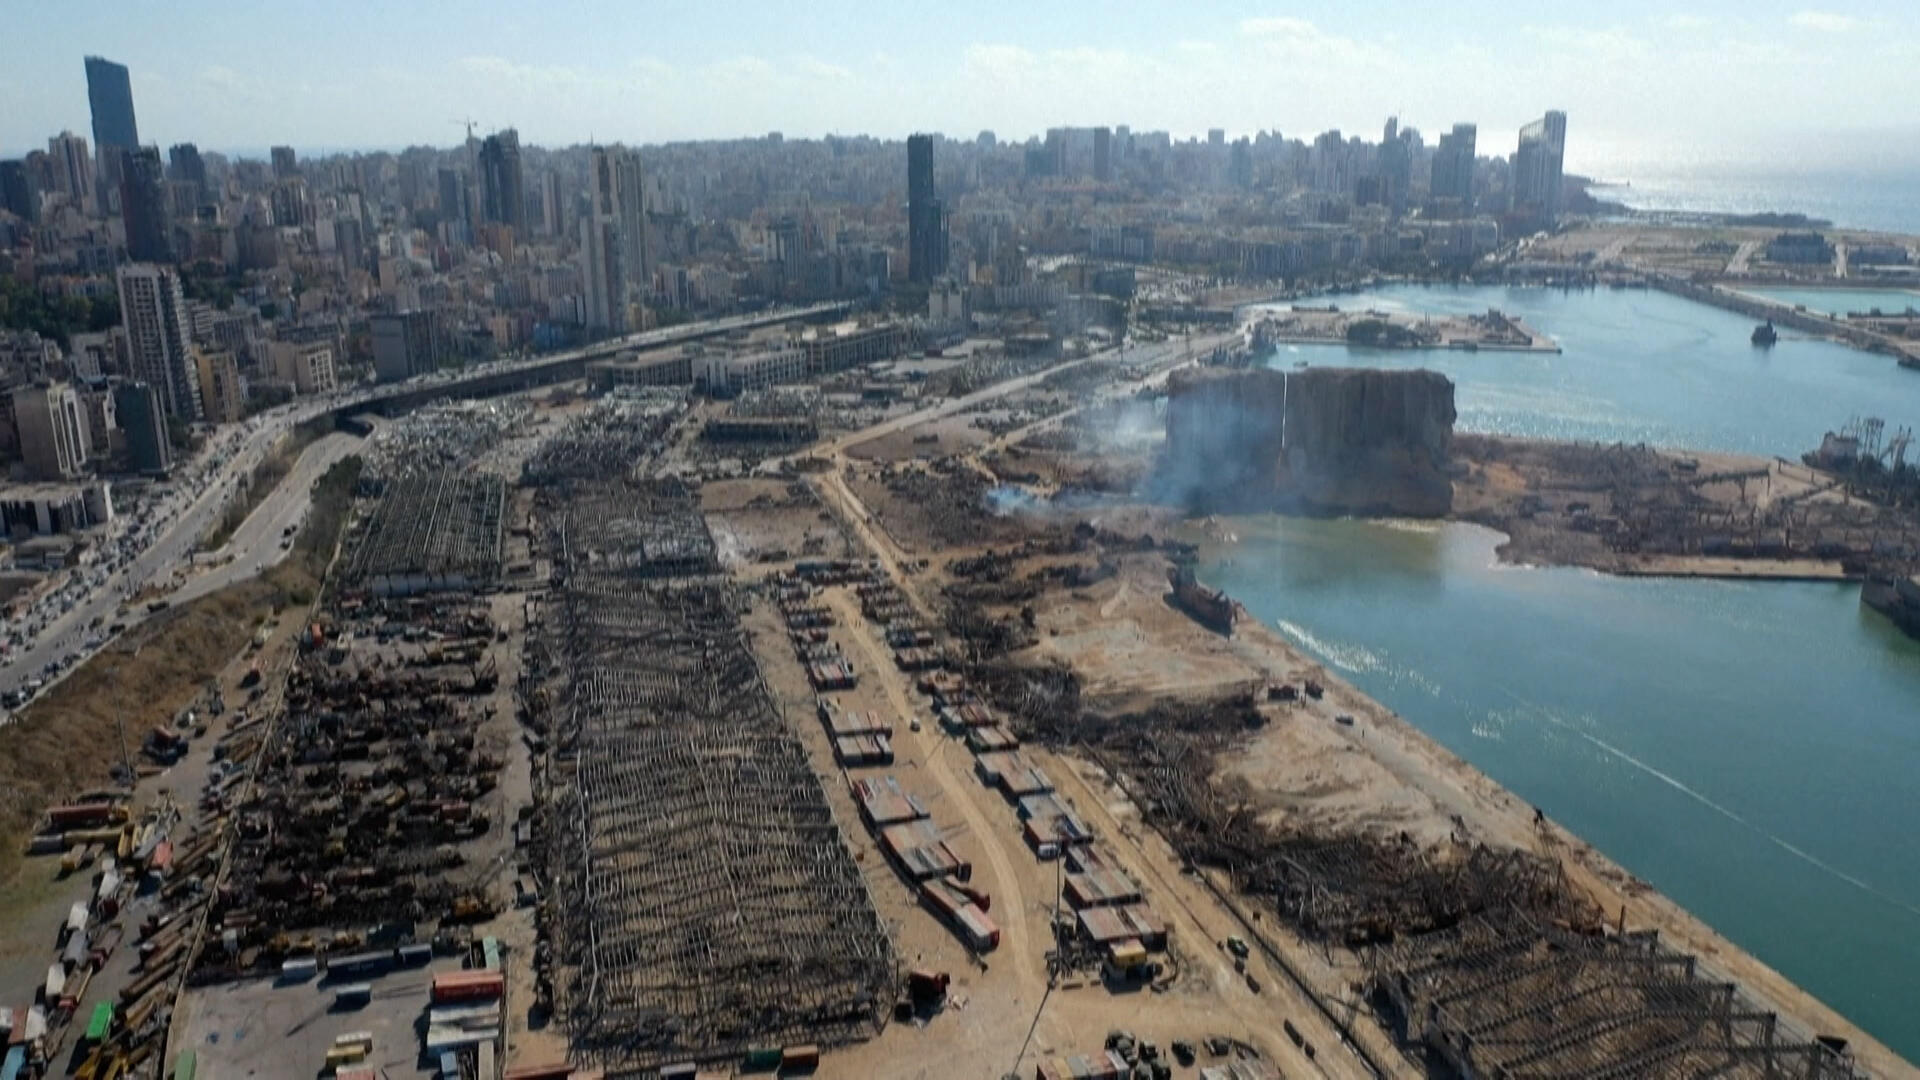 XX PUSH PICTURE BIL beyrouth (0-00-00-00)